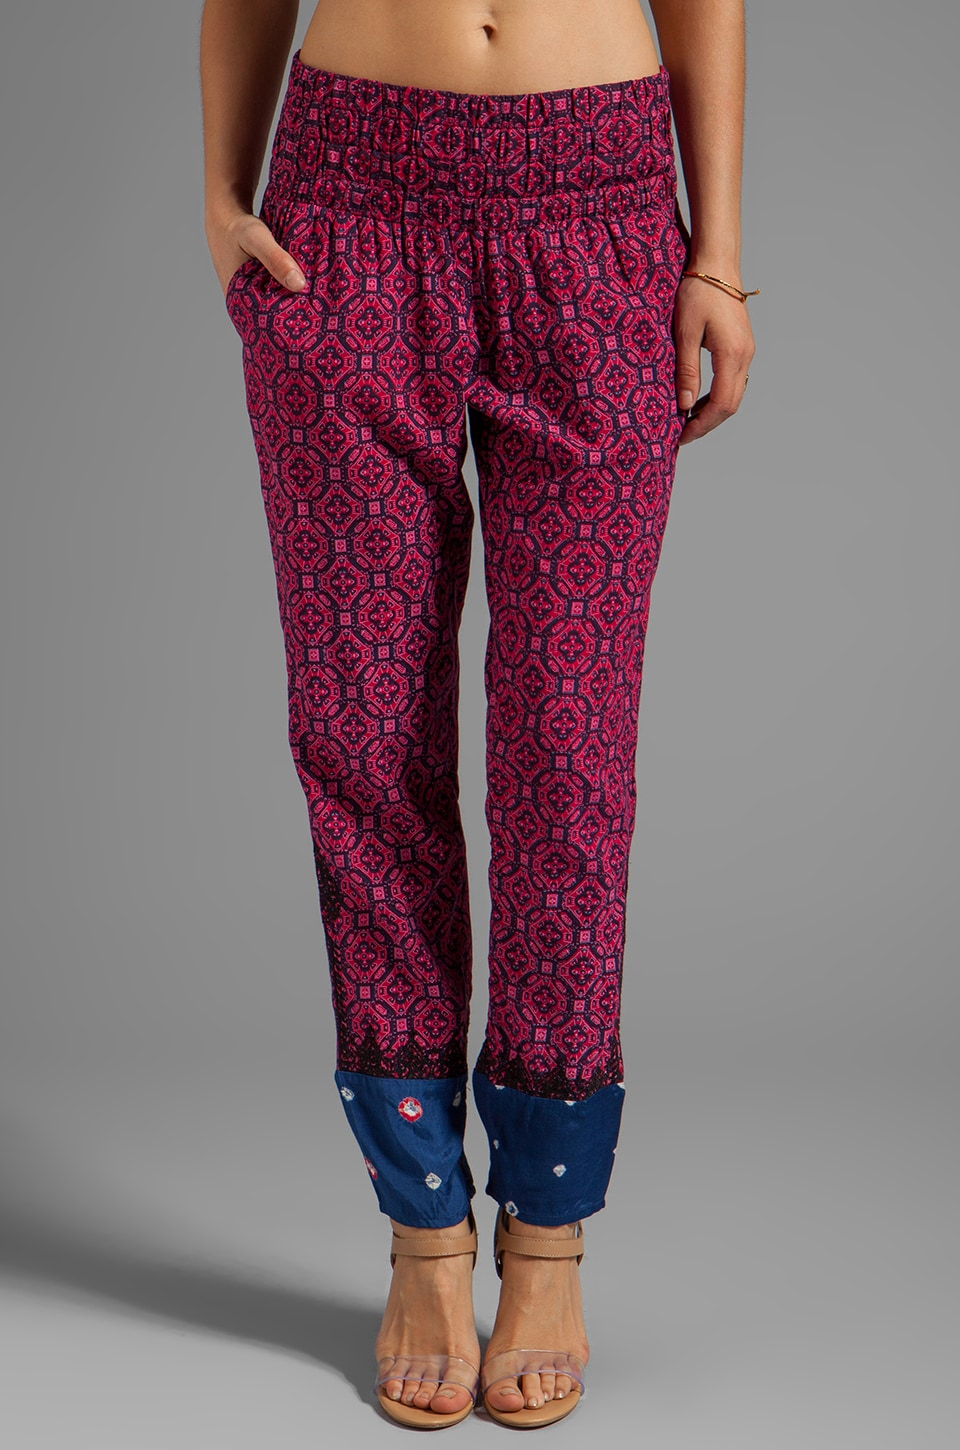 Tigerlily Bandhini Pant in Raspberry